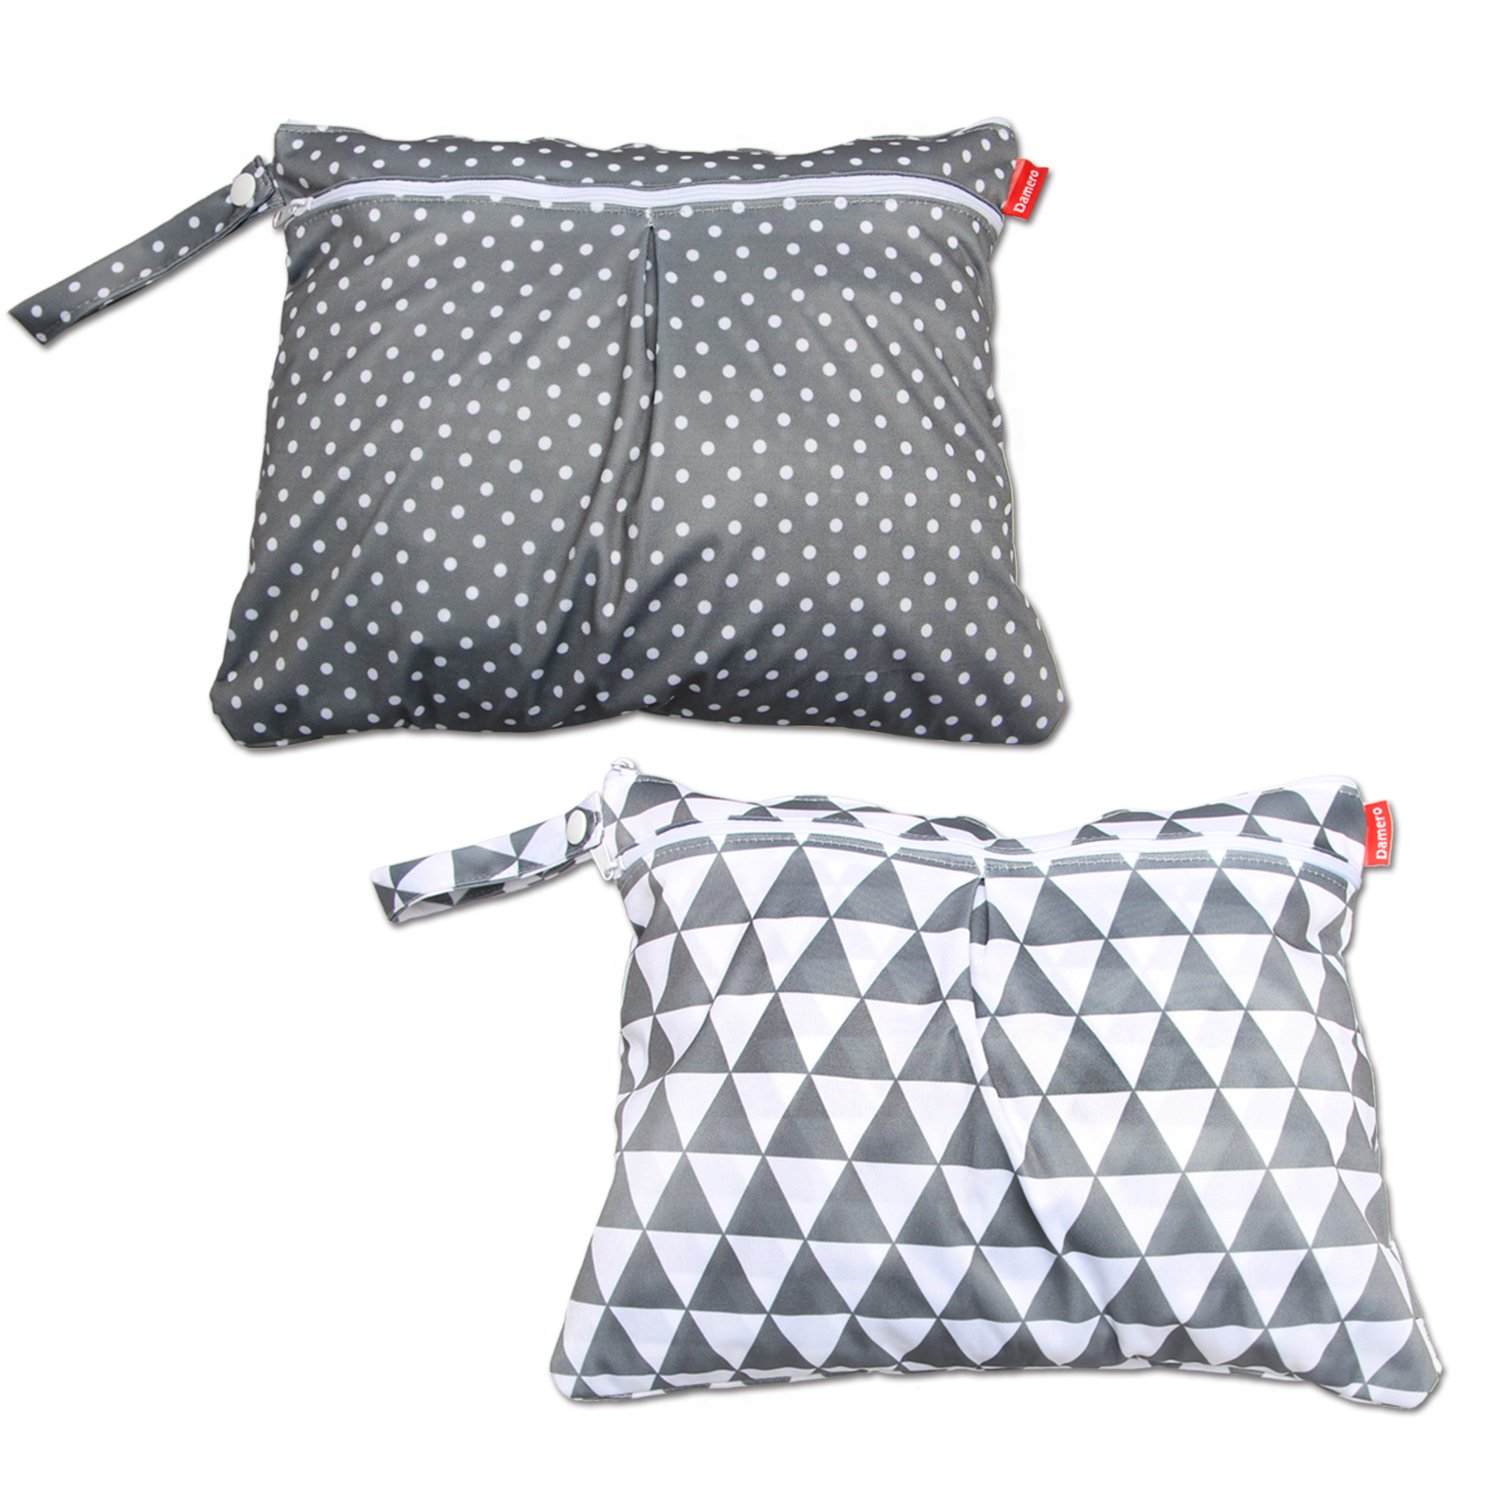 Damero 2pcs Travel Wet and Dry Diaper with Cloth for Bag Max 70% OFF Handle free